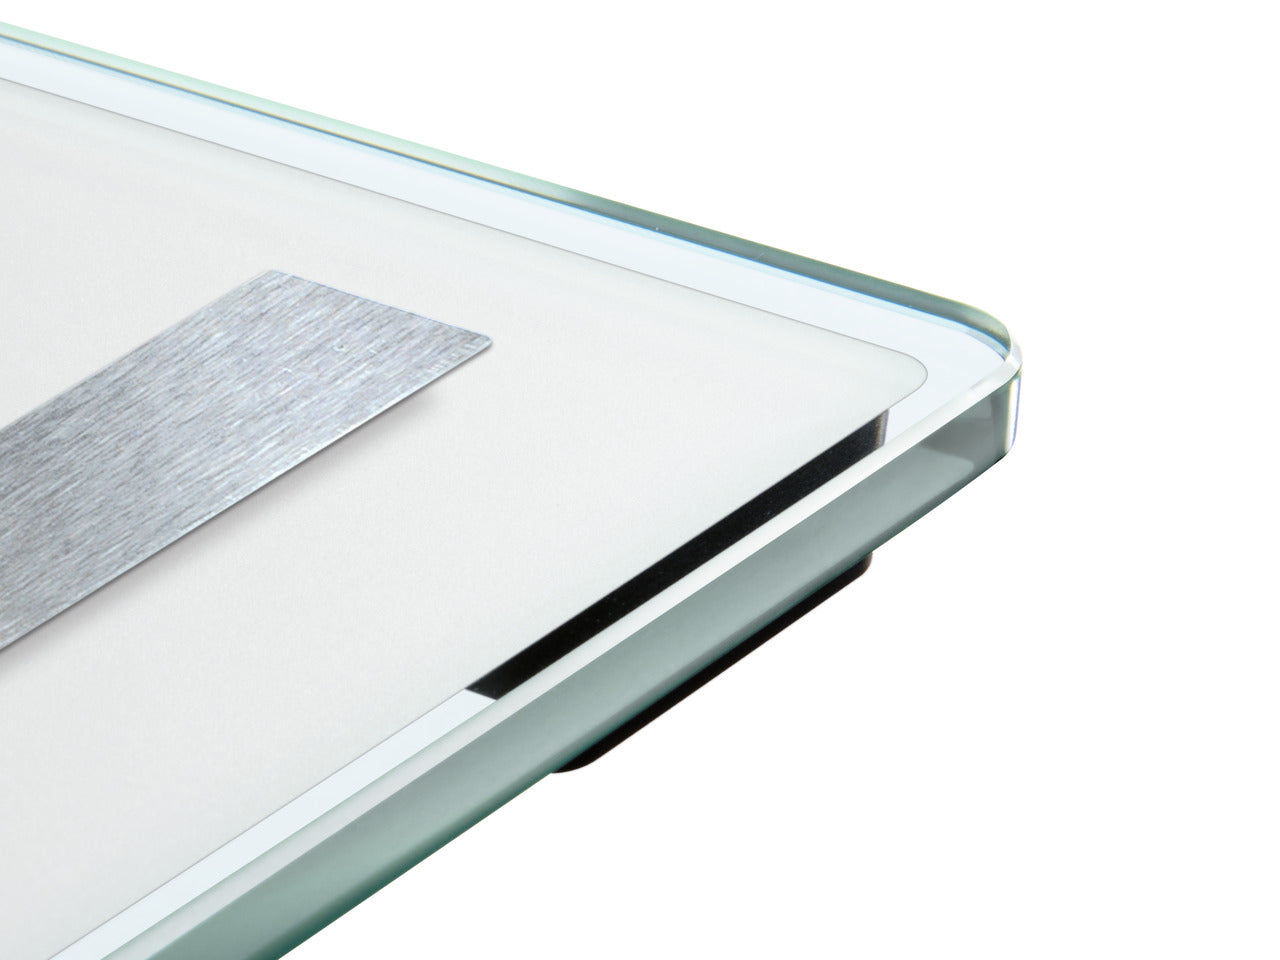 Soehnle Shape Sense Control 200 Bathroom Scale 180kg Capacity S63858